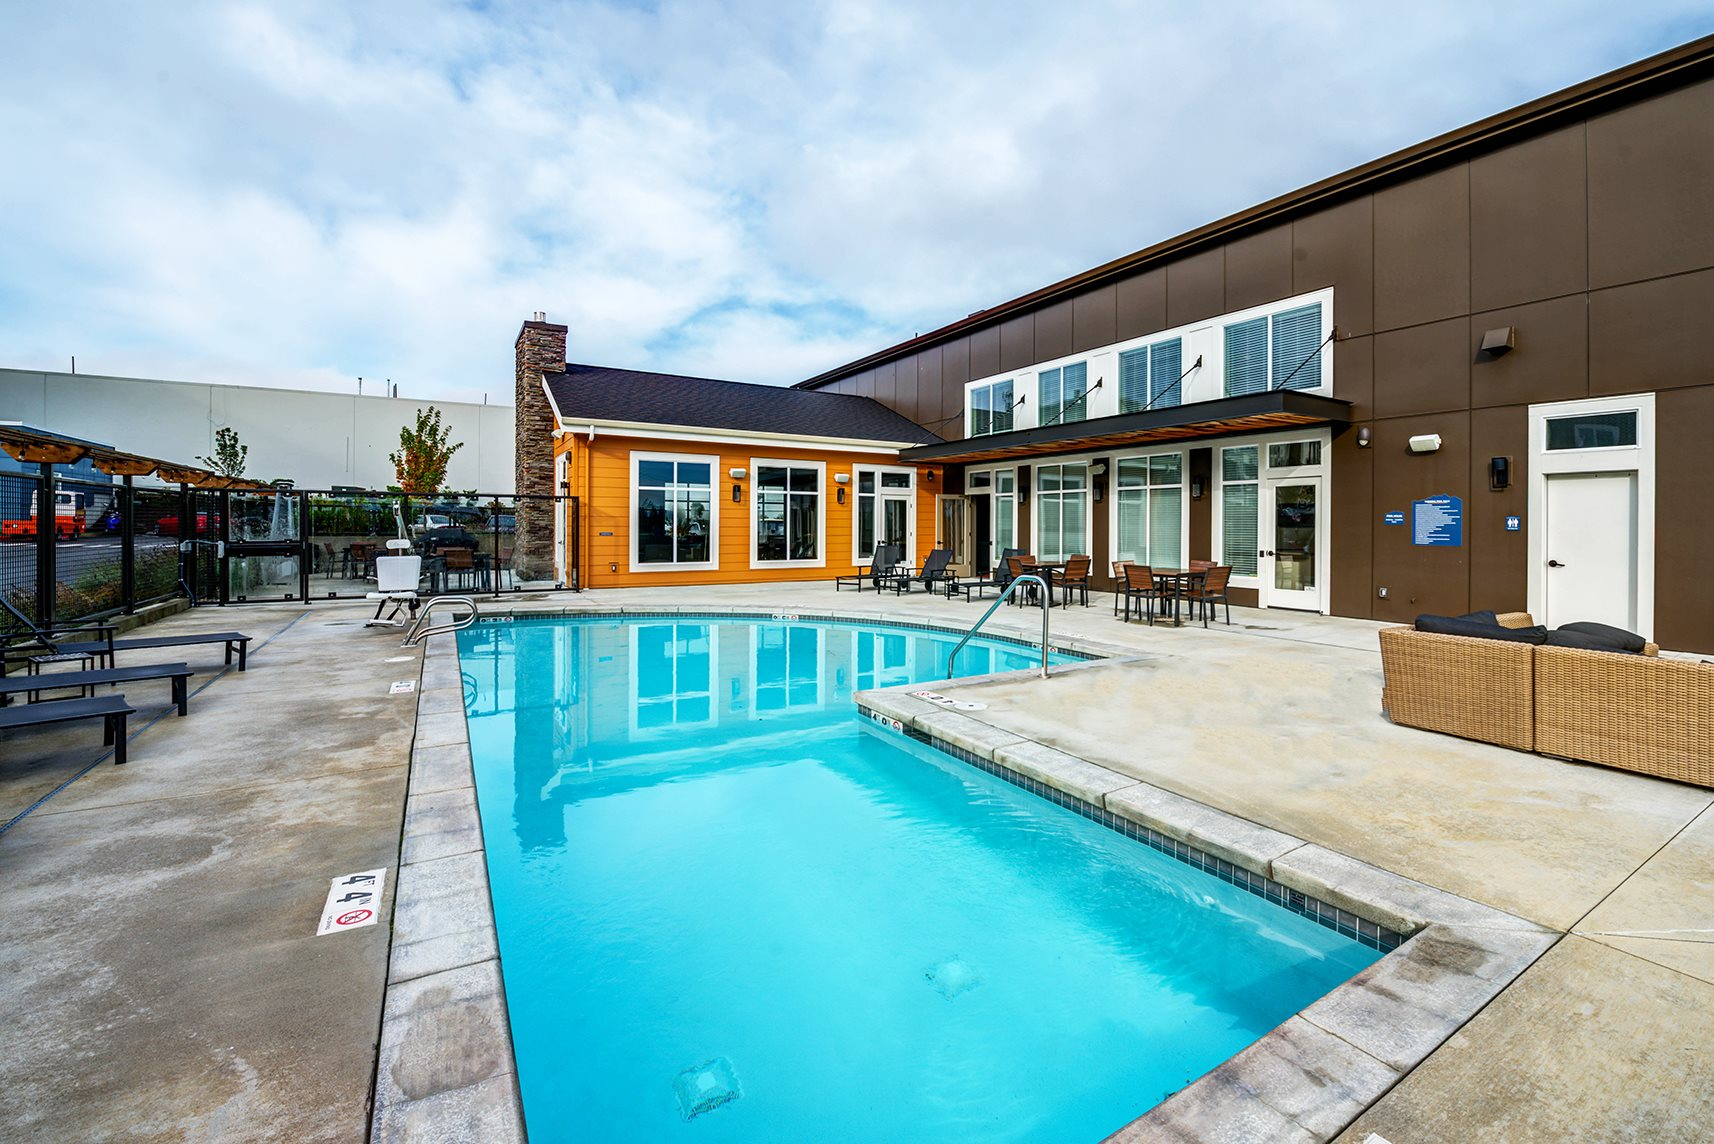 Lynnwood wa apartments altia apartments photo gallery for Lynnwood swimming pool schedule